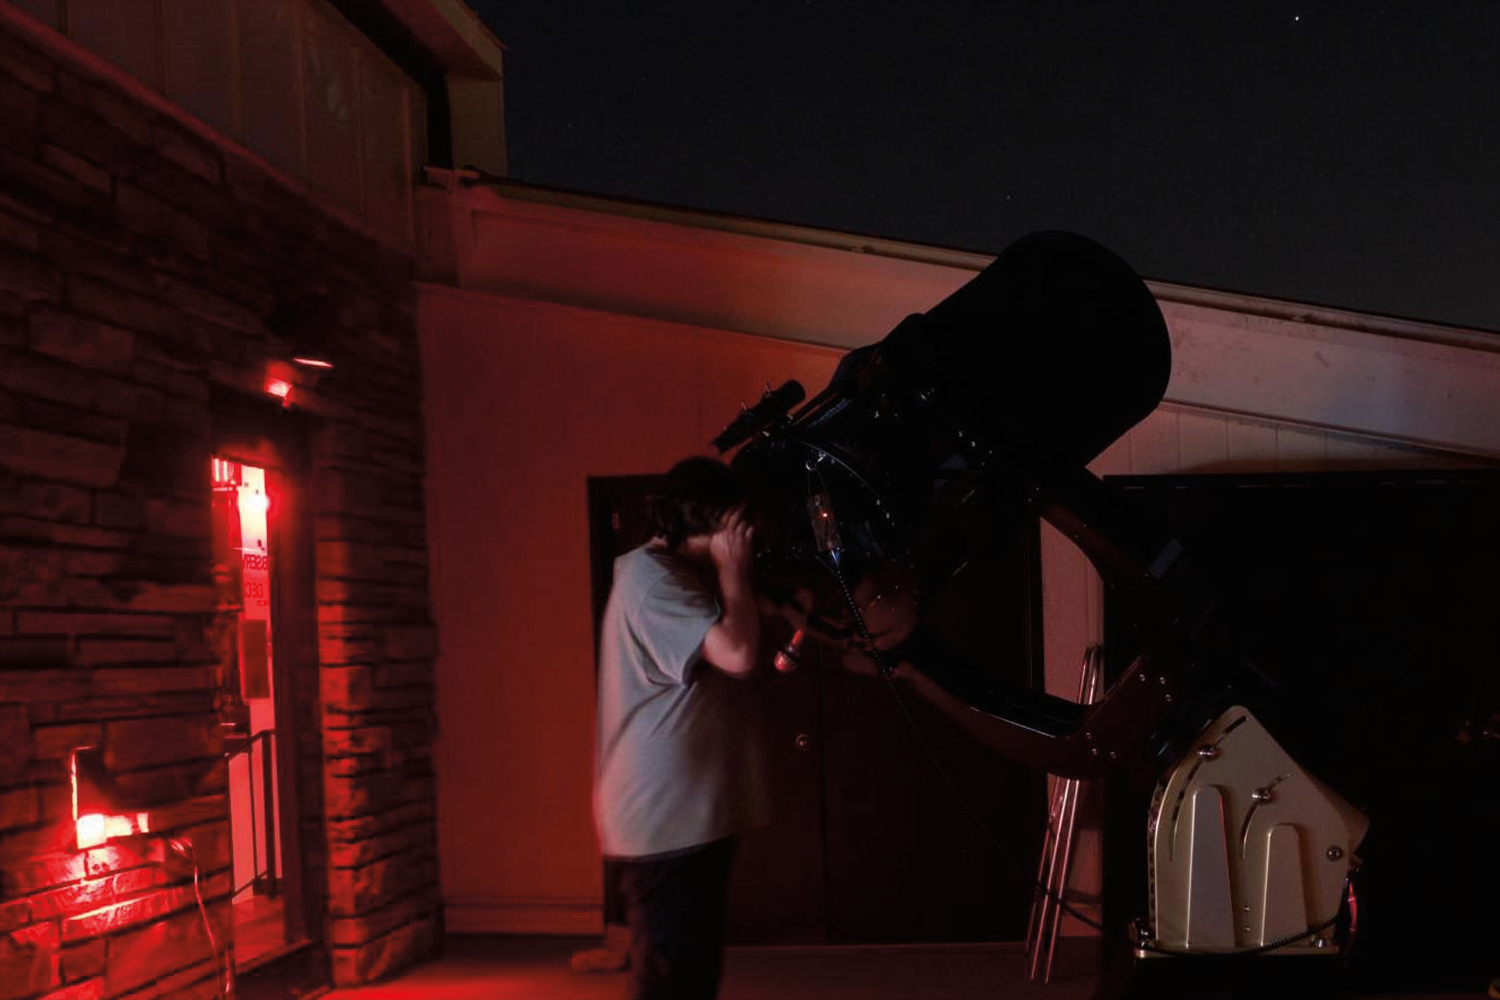 Person looking through a PlaneWave telescope at night with red lights